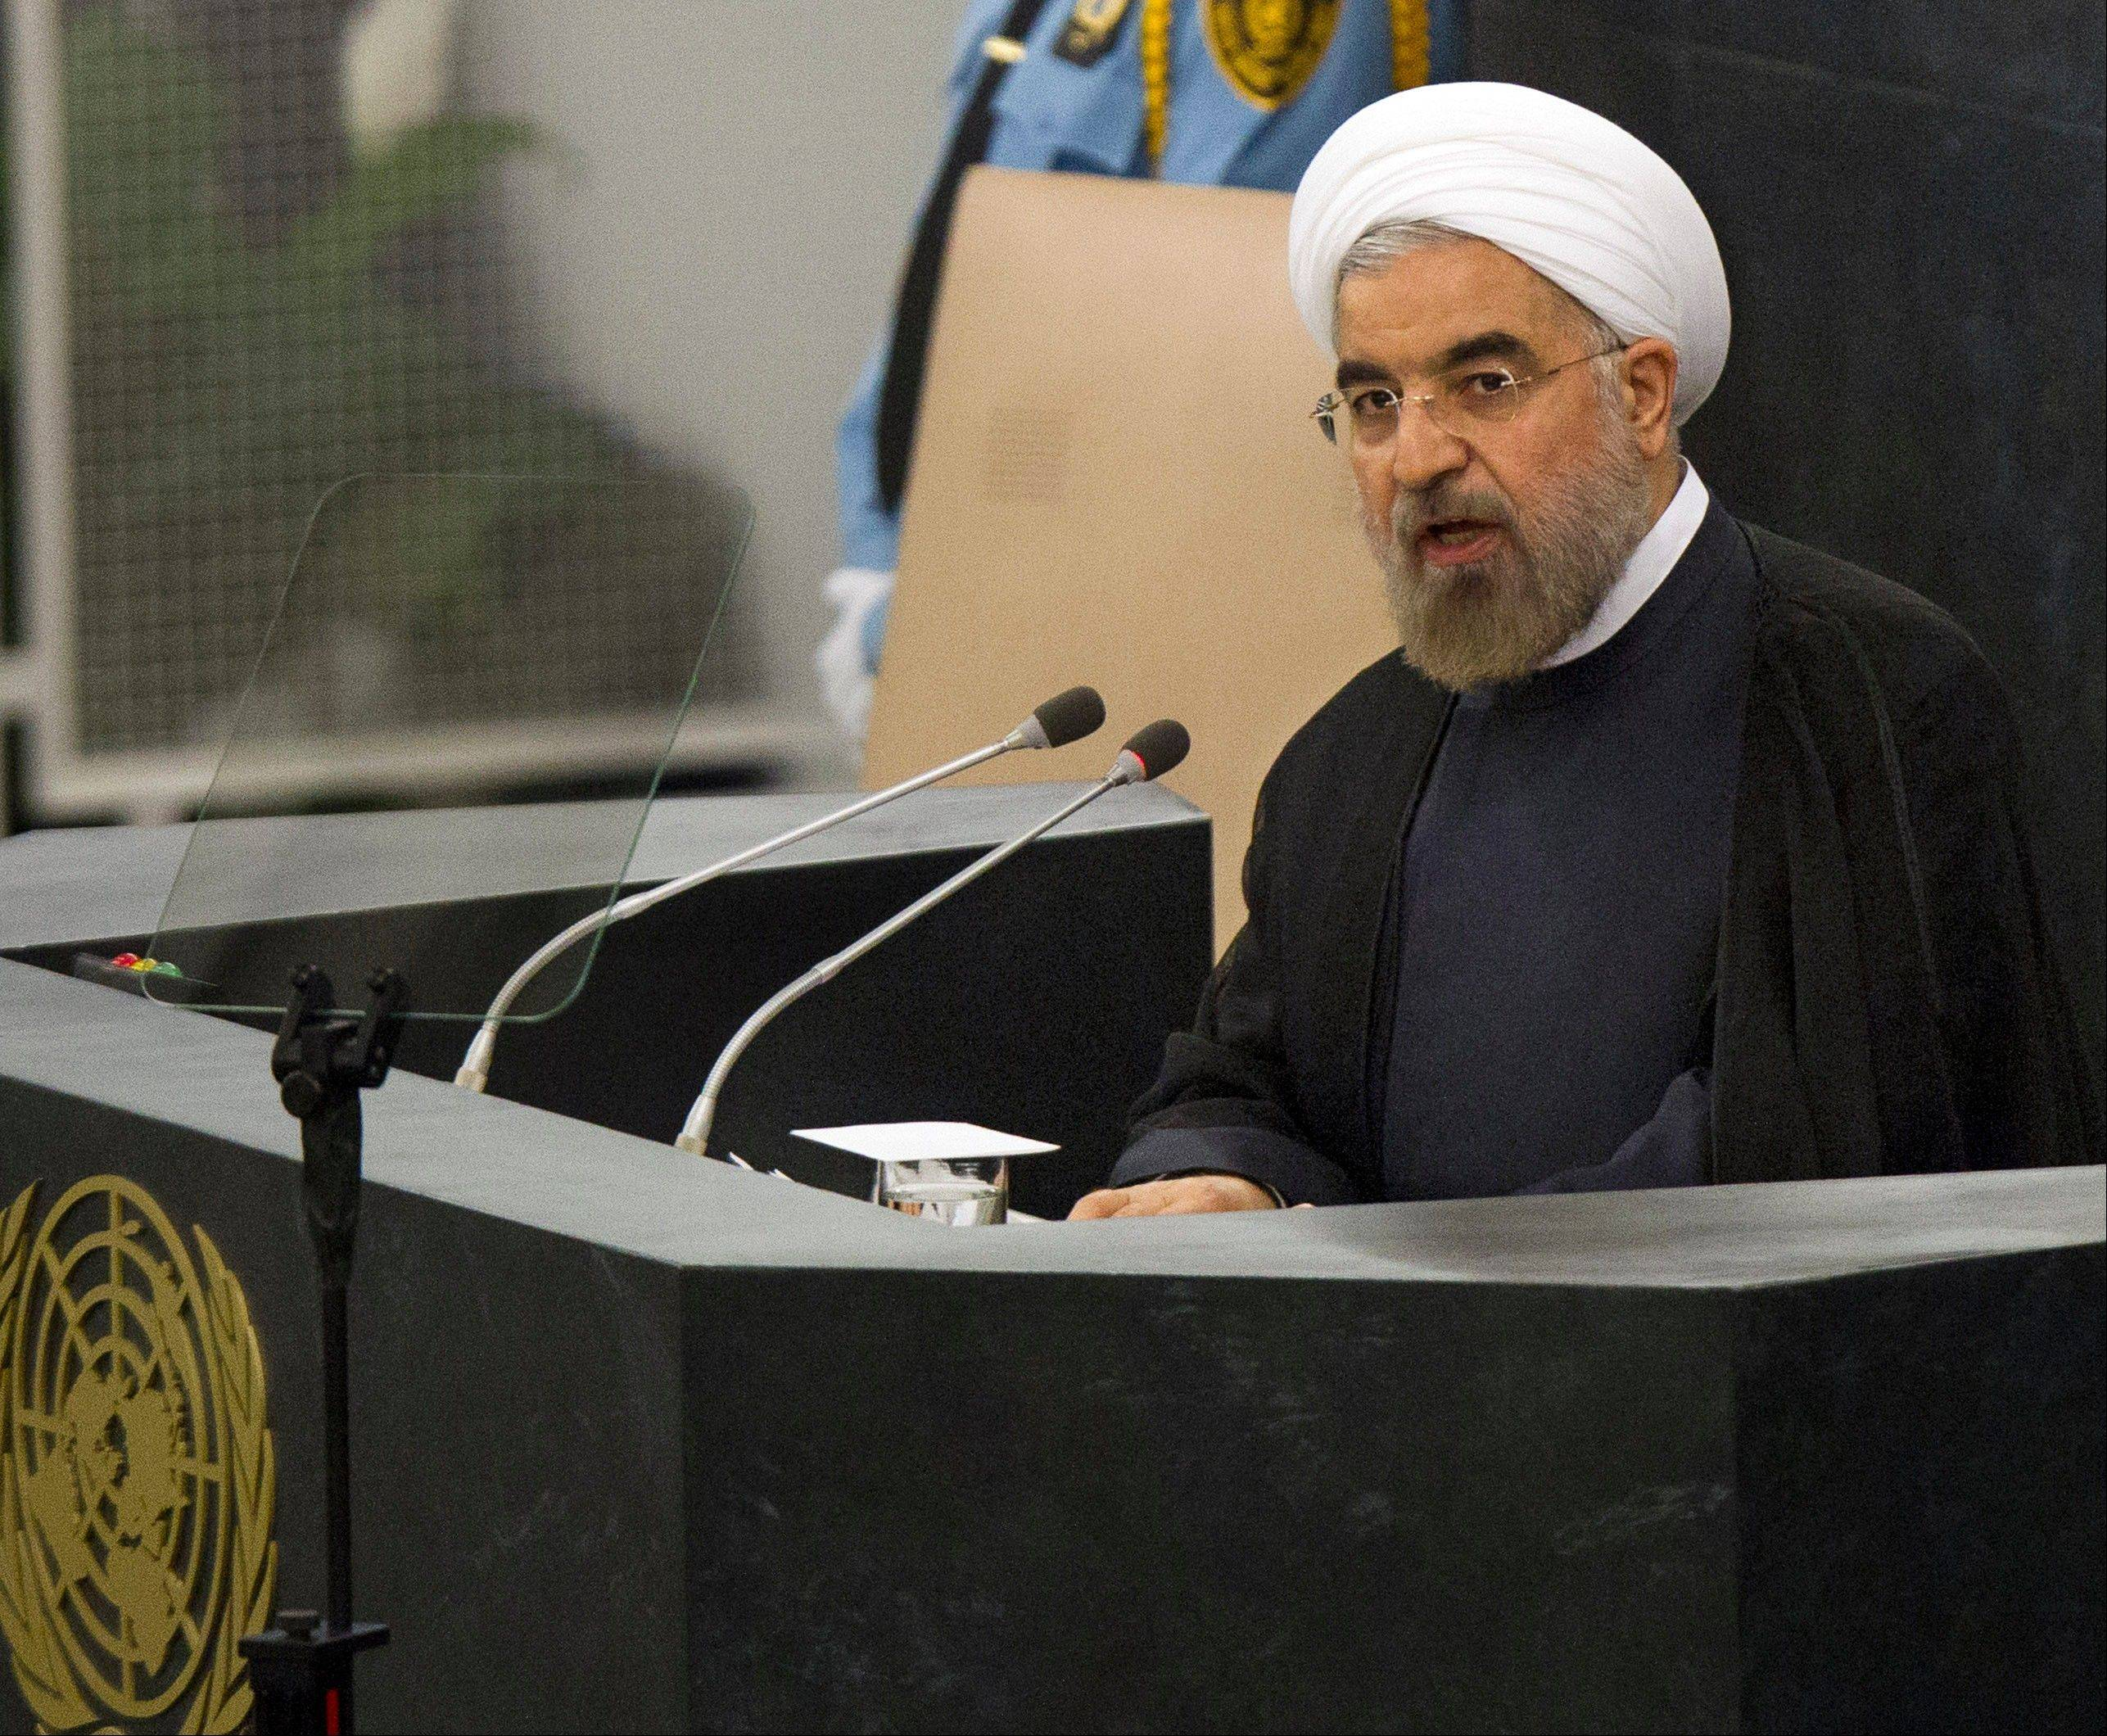 Hasan Rouhani, President of the Islamic Republic of Iran, addresses the 68th United Nations General Assembly at UN headquarters, Tuesday, Sept. 24, 2013.